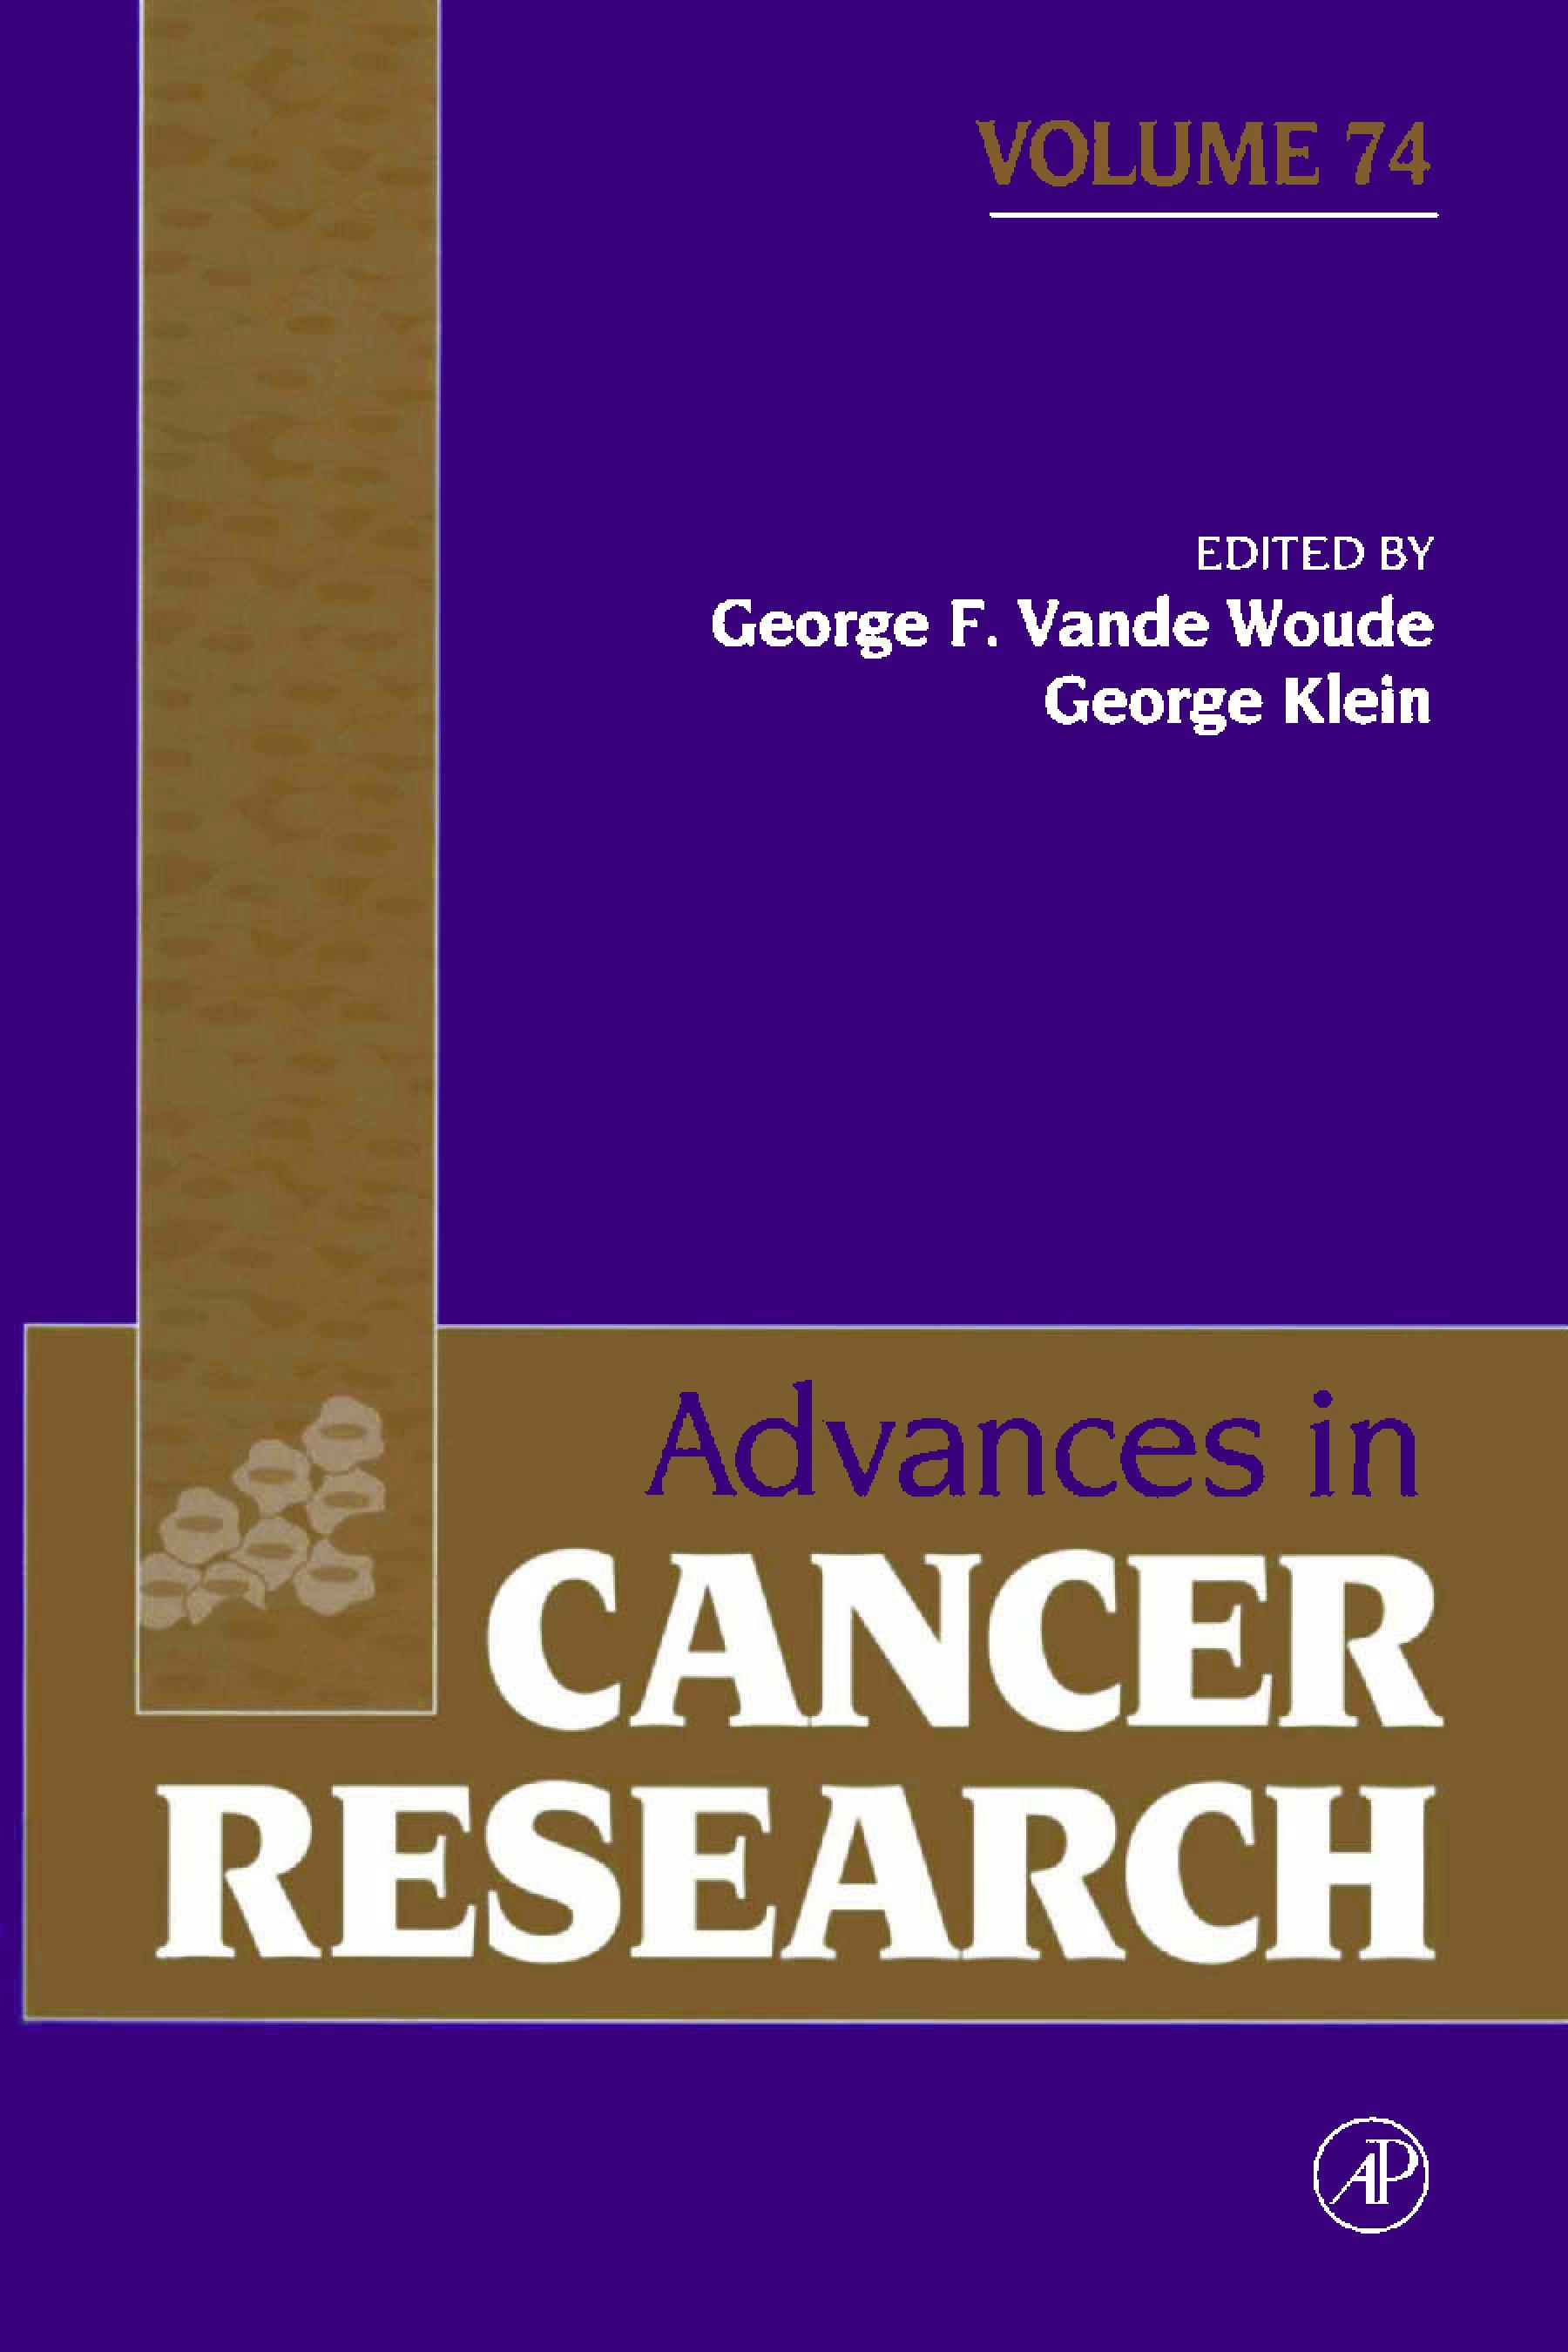 Advances in Cancer Research EB9780080562568